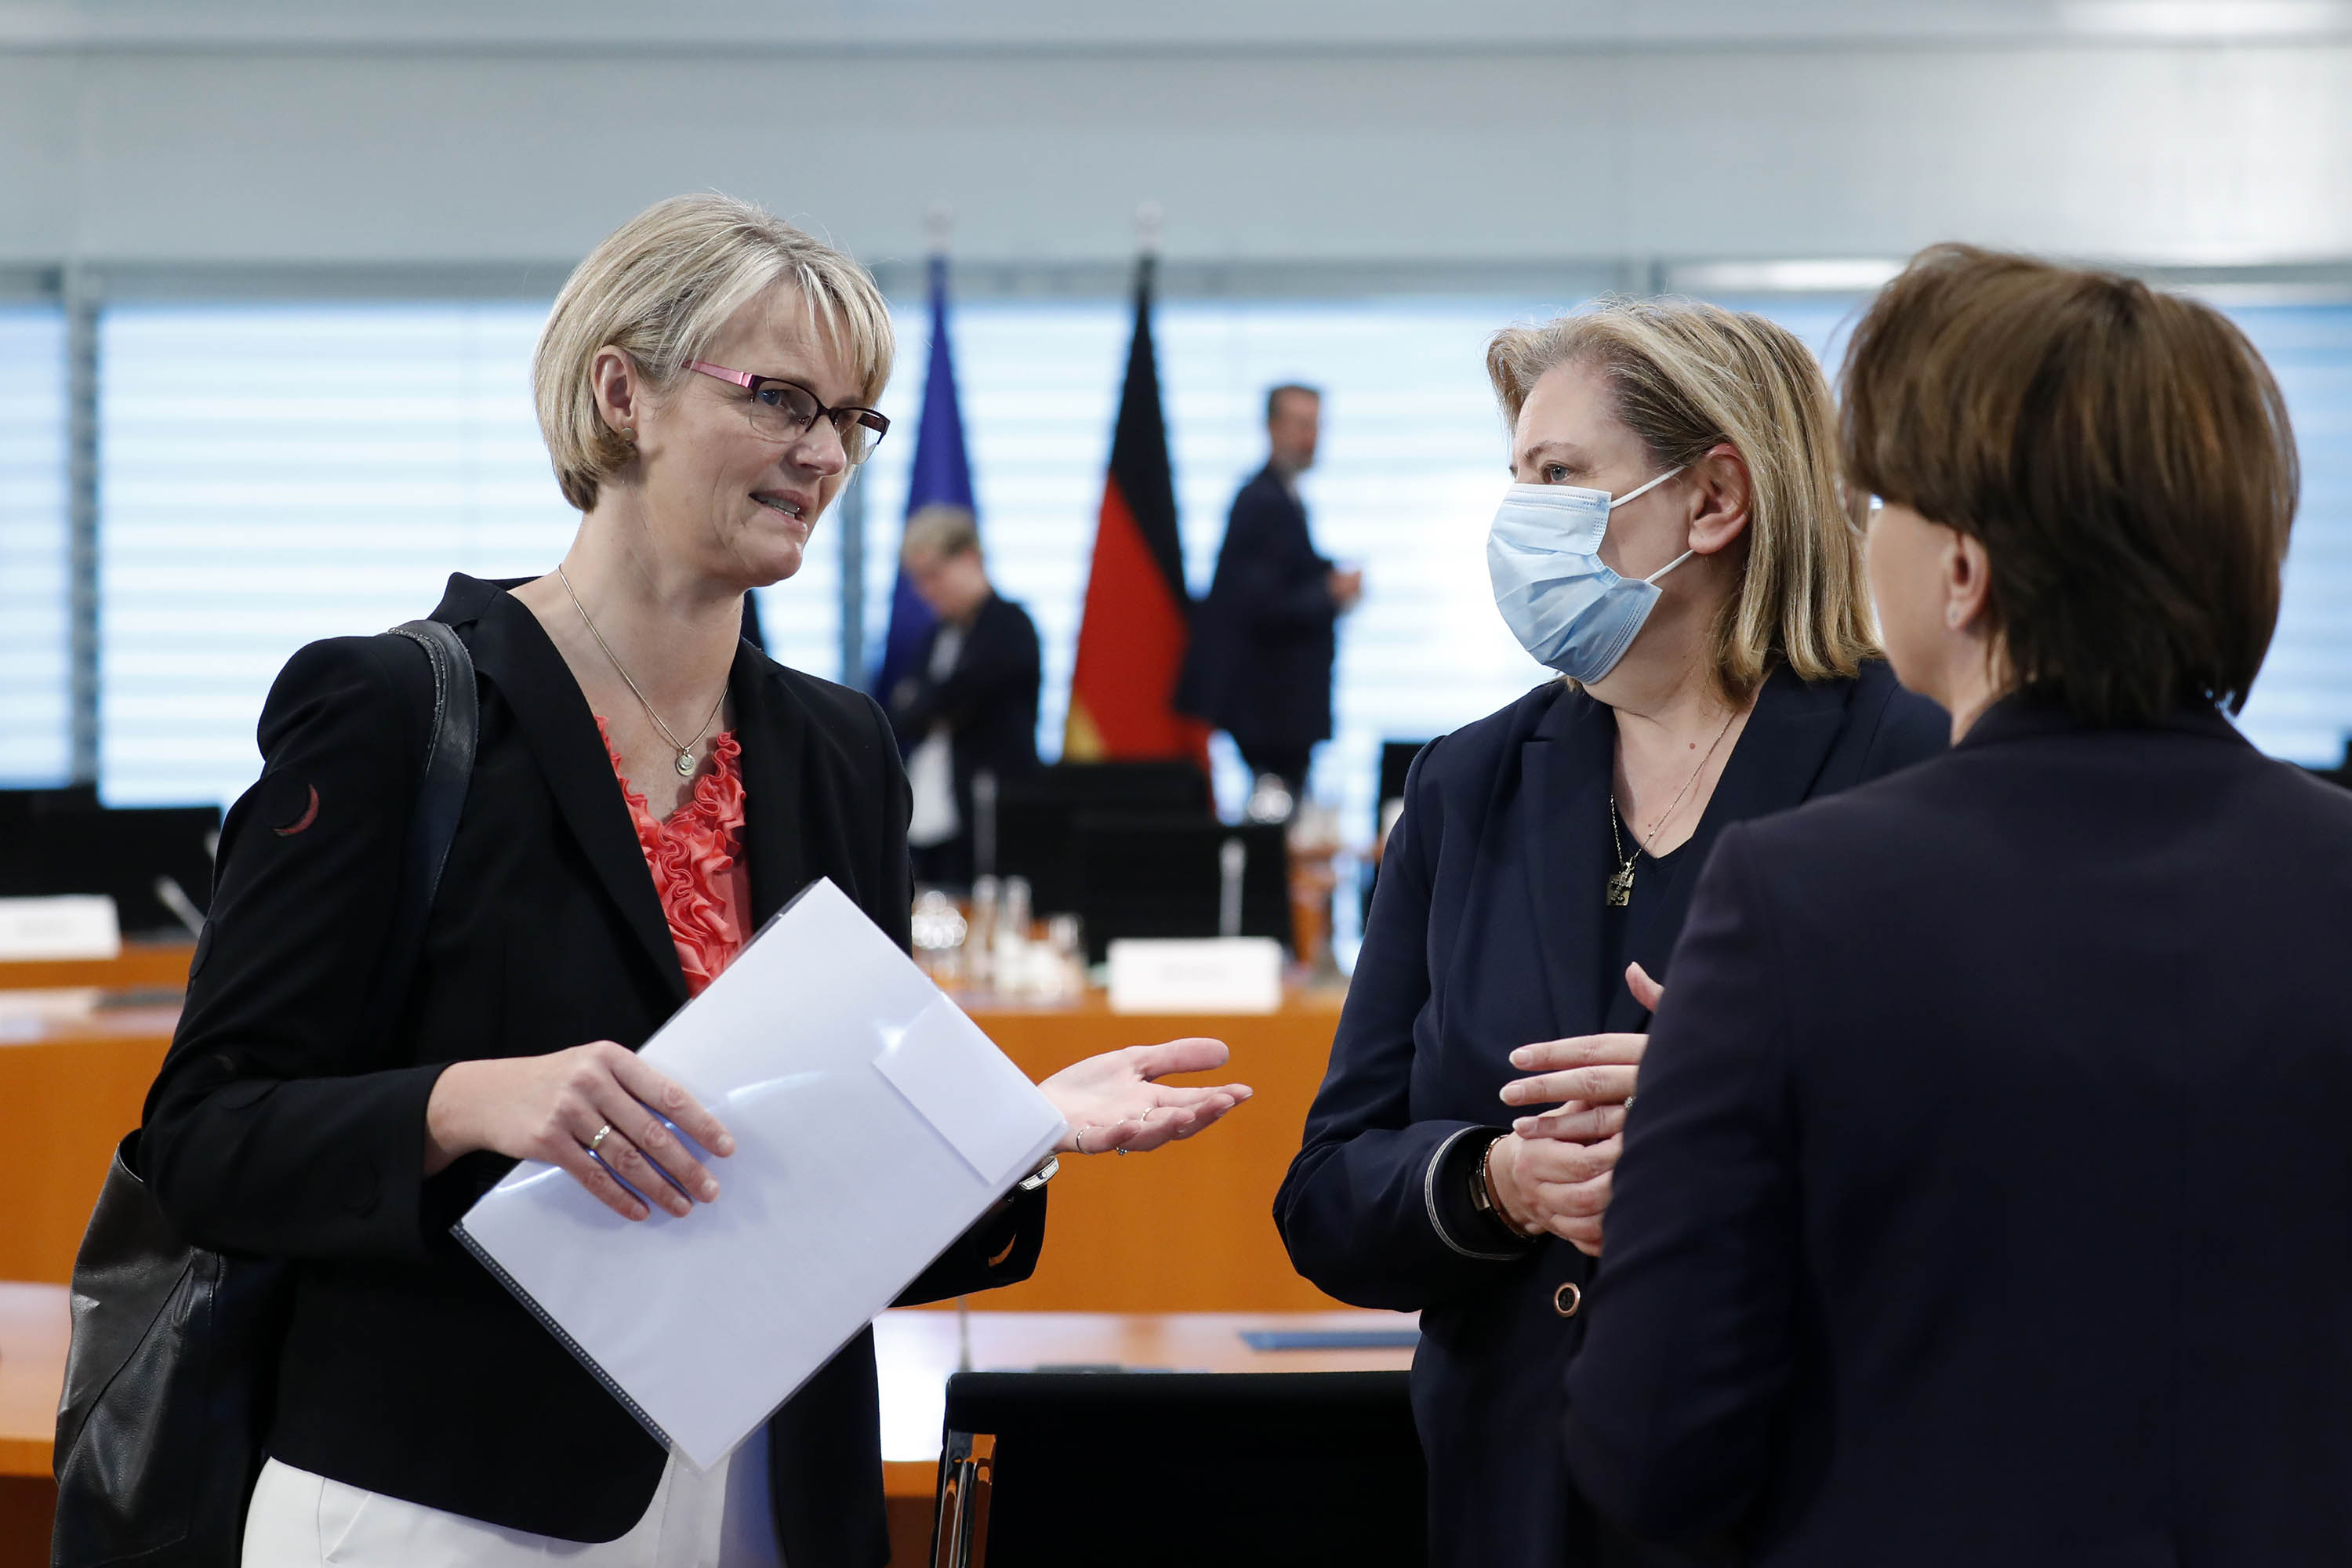 Germany's minister for research Anja Karliczek, left, attends a cabinet meeting at the German chancellery in Berlin on July 29.